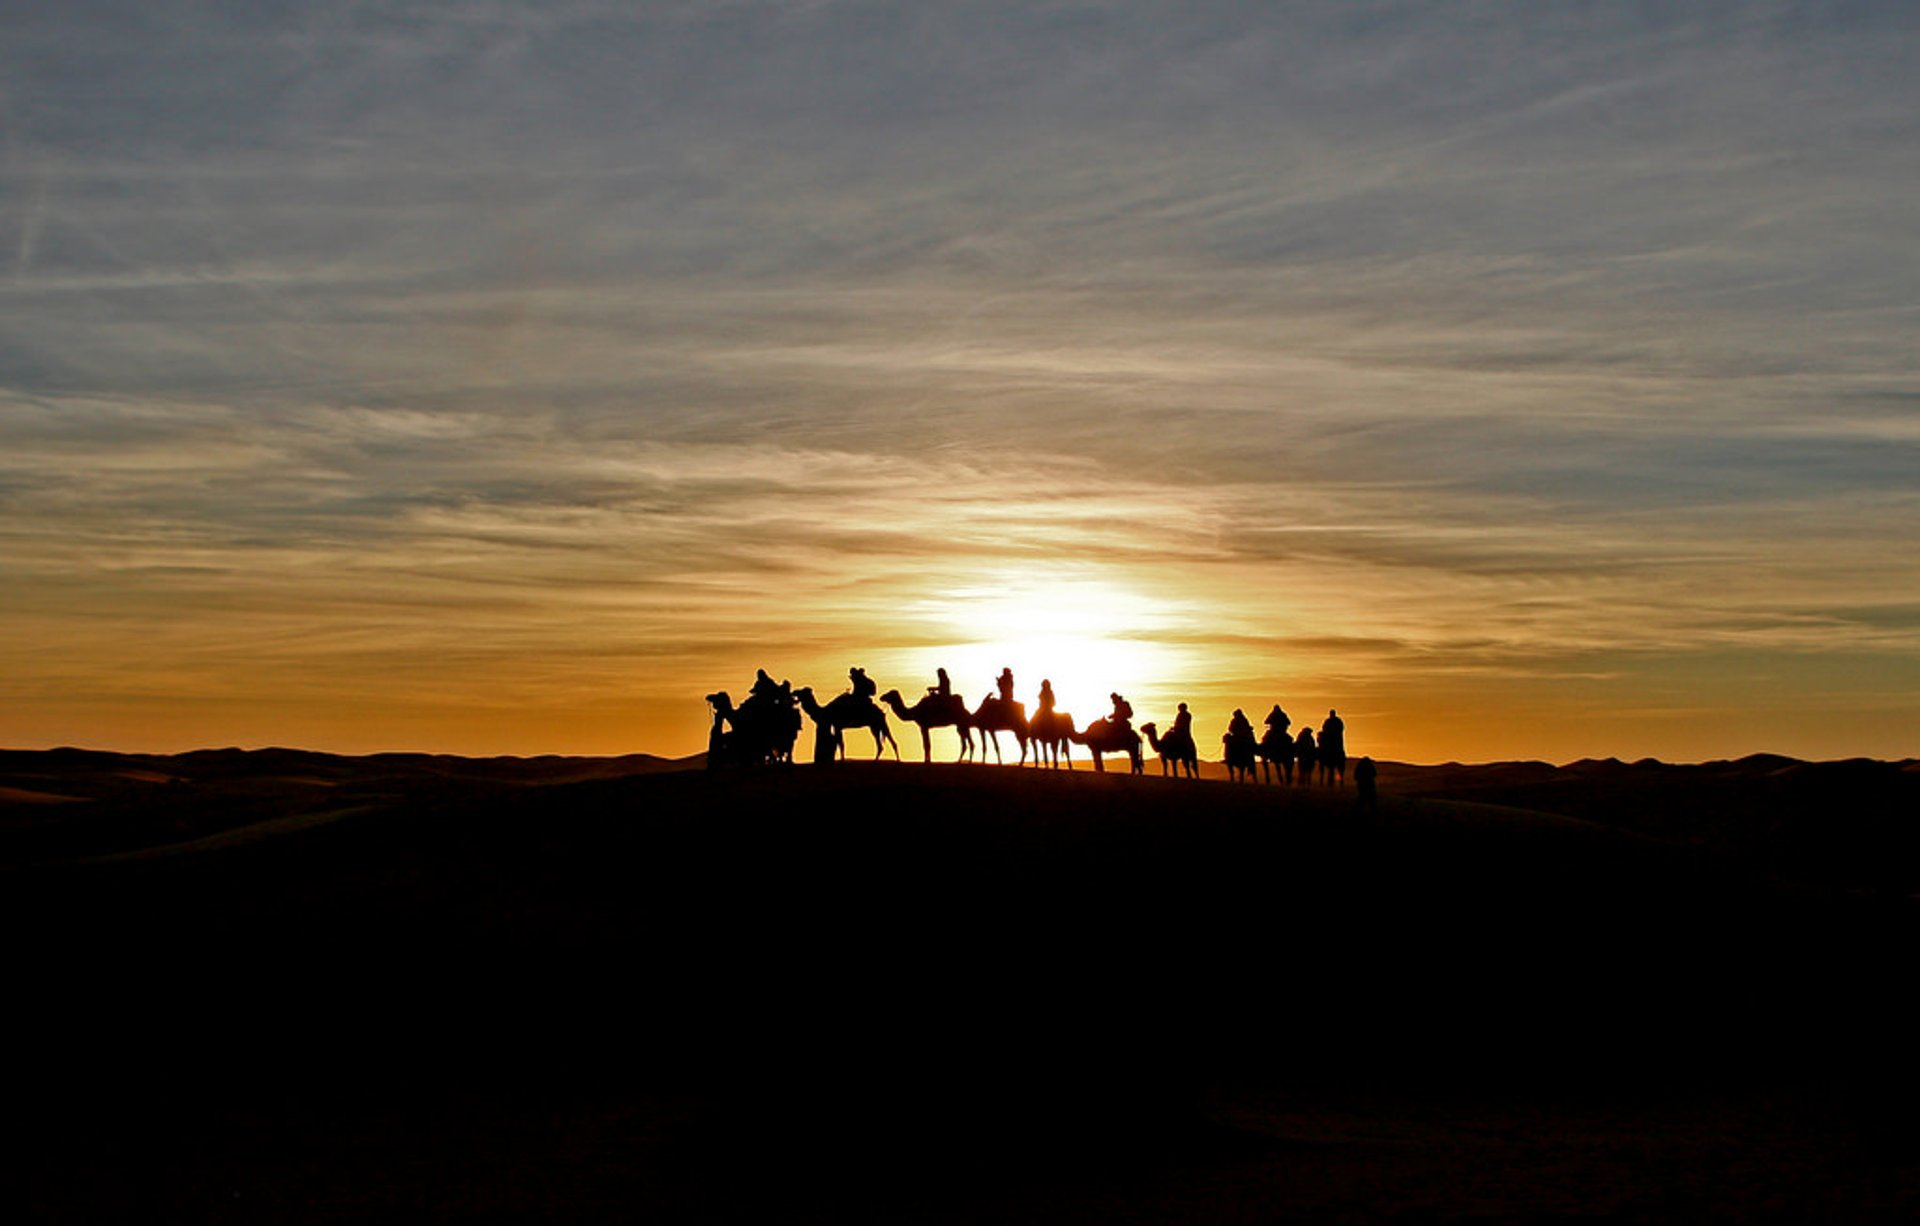 Sunrise and Sunset in Morocco 2019 - Best Time